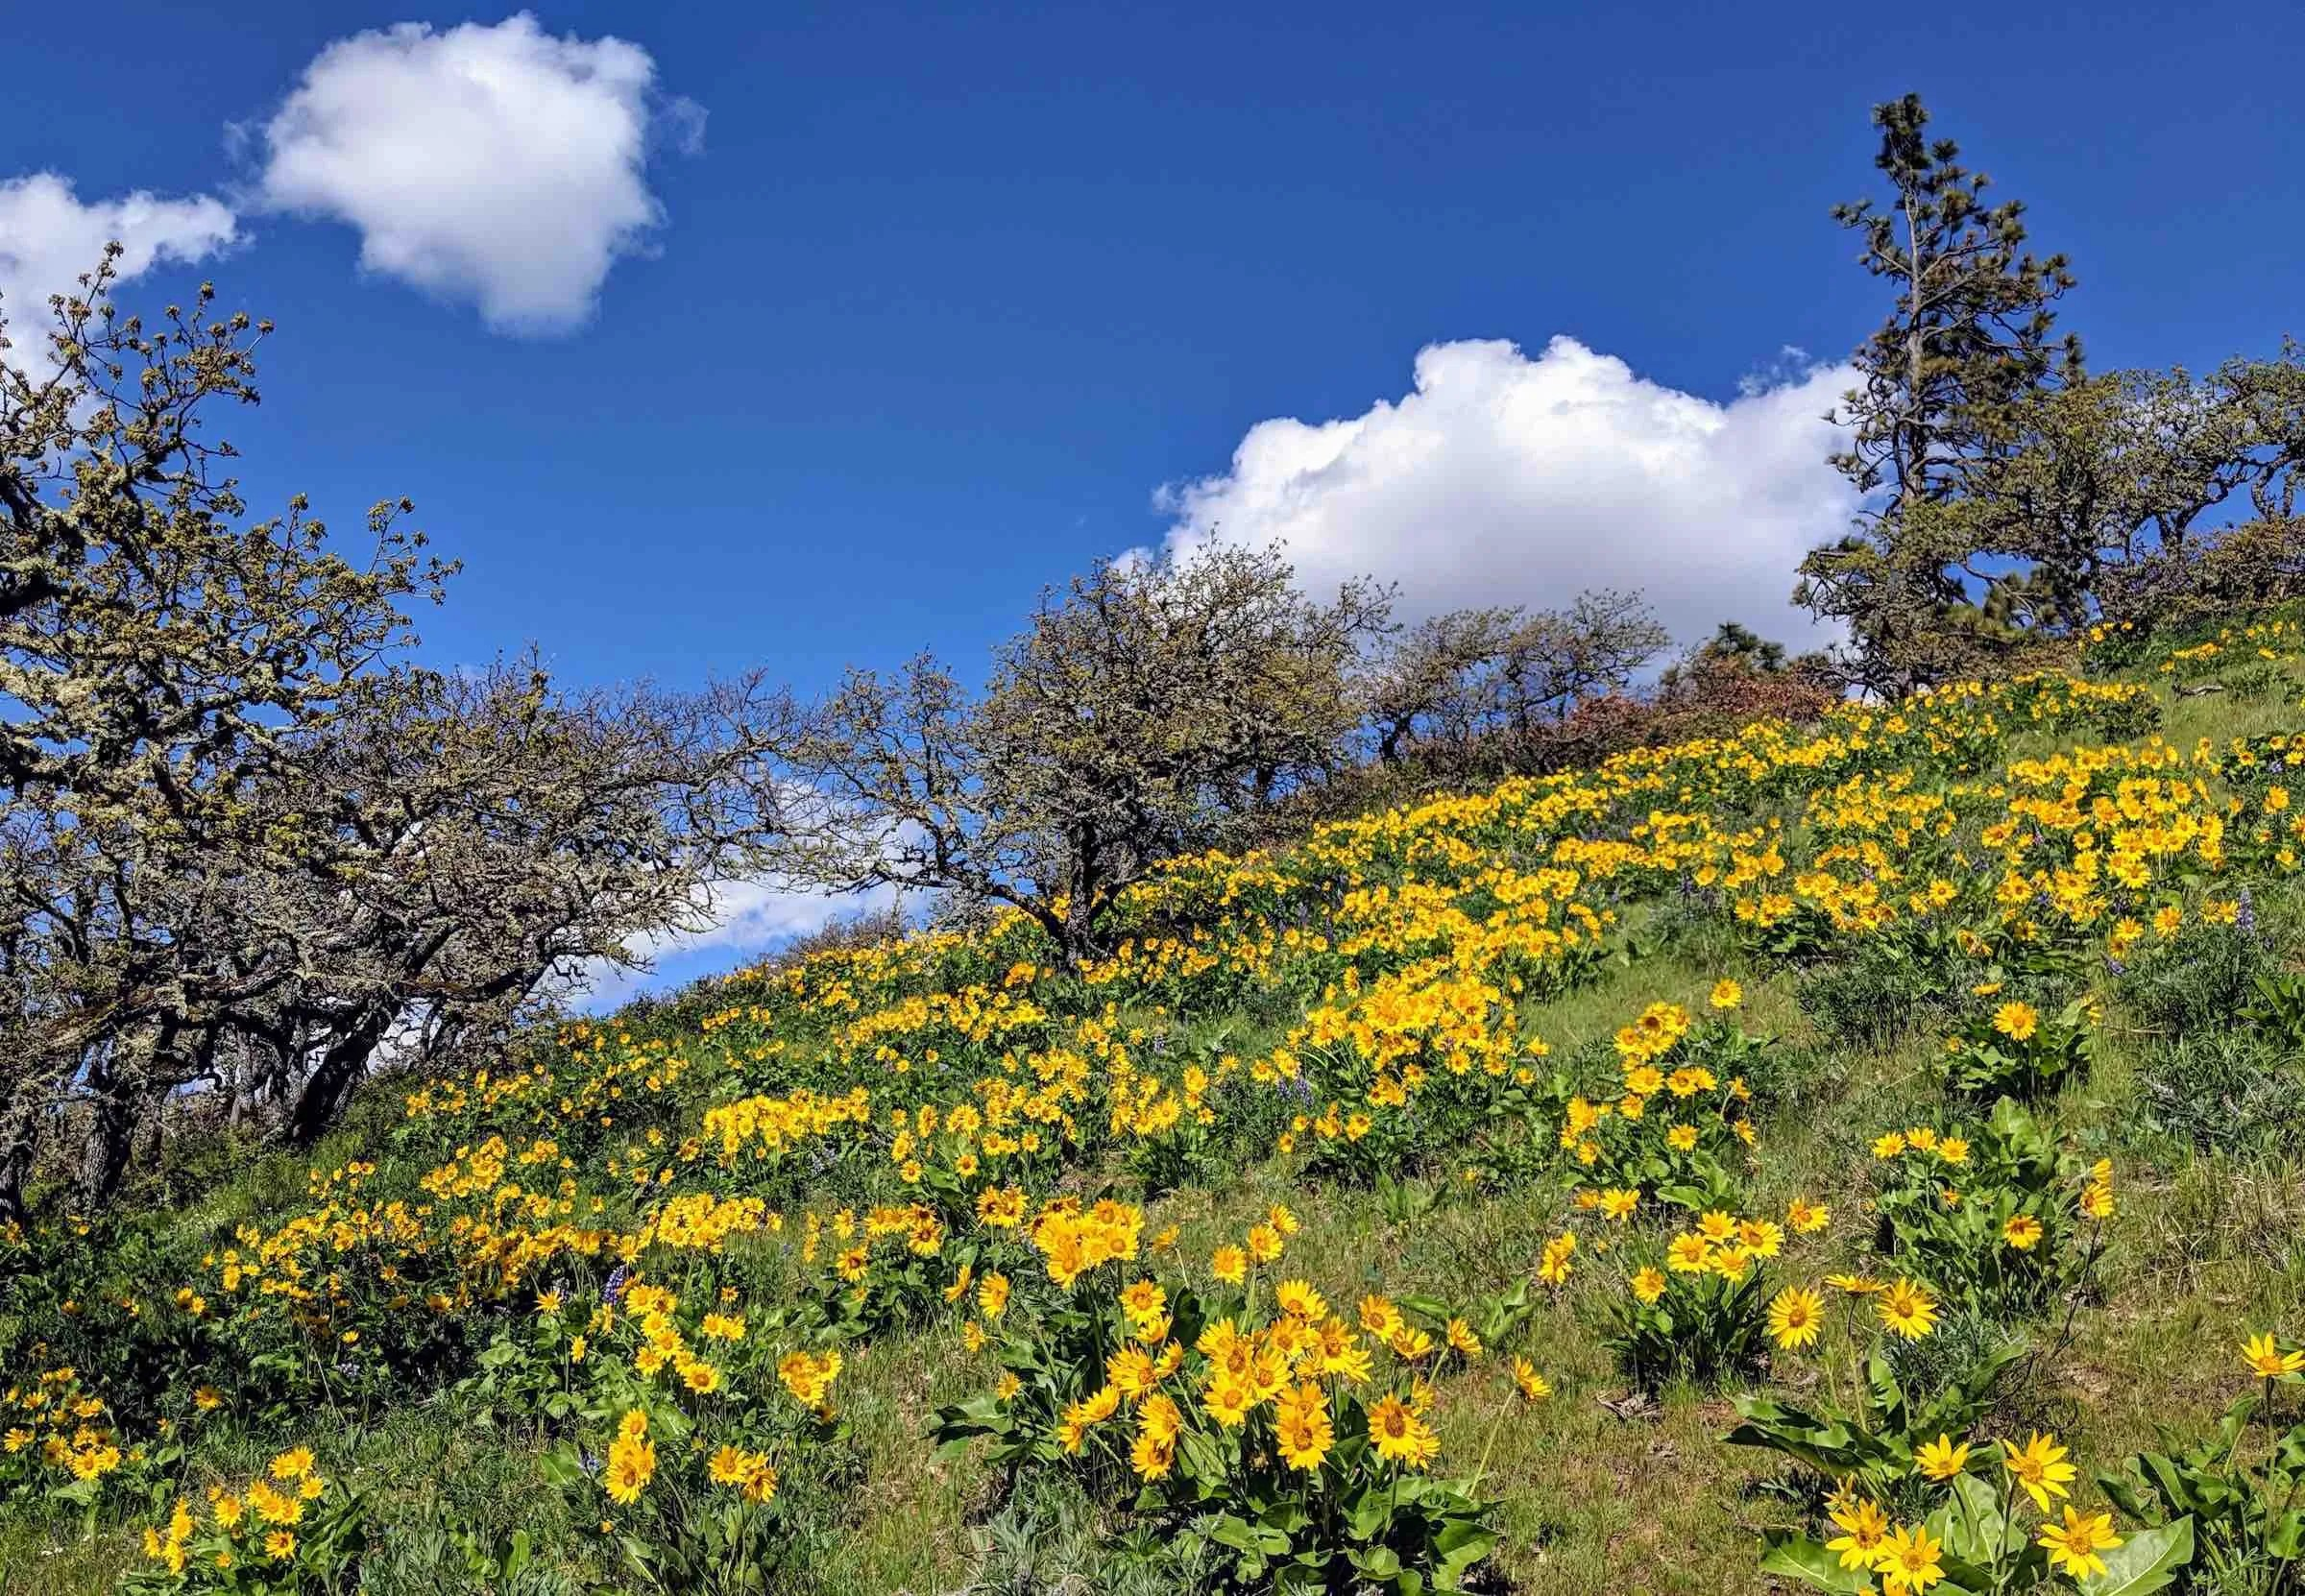 Hillside of yellow flowers